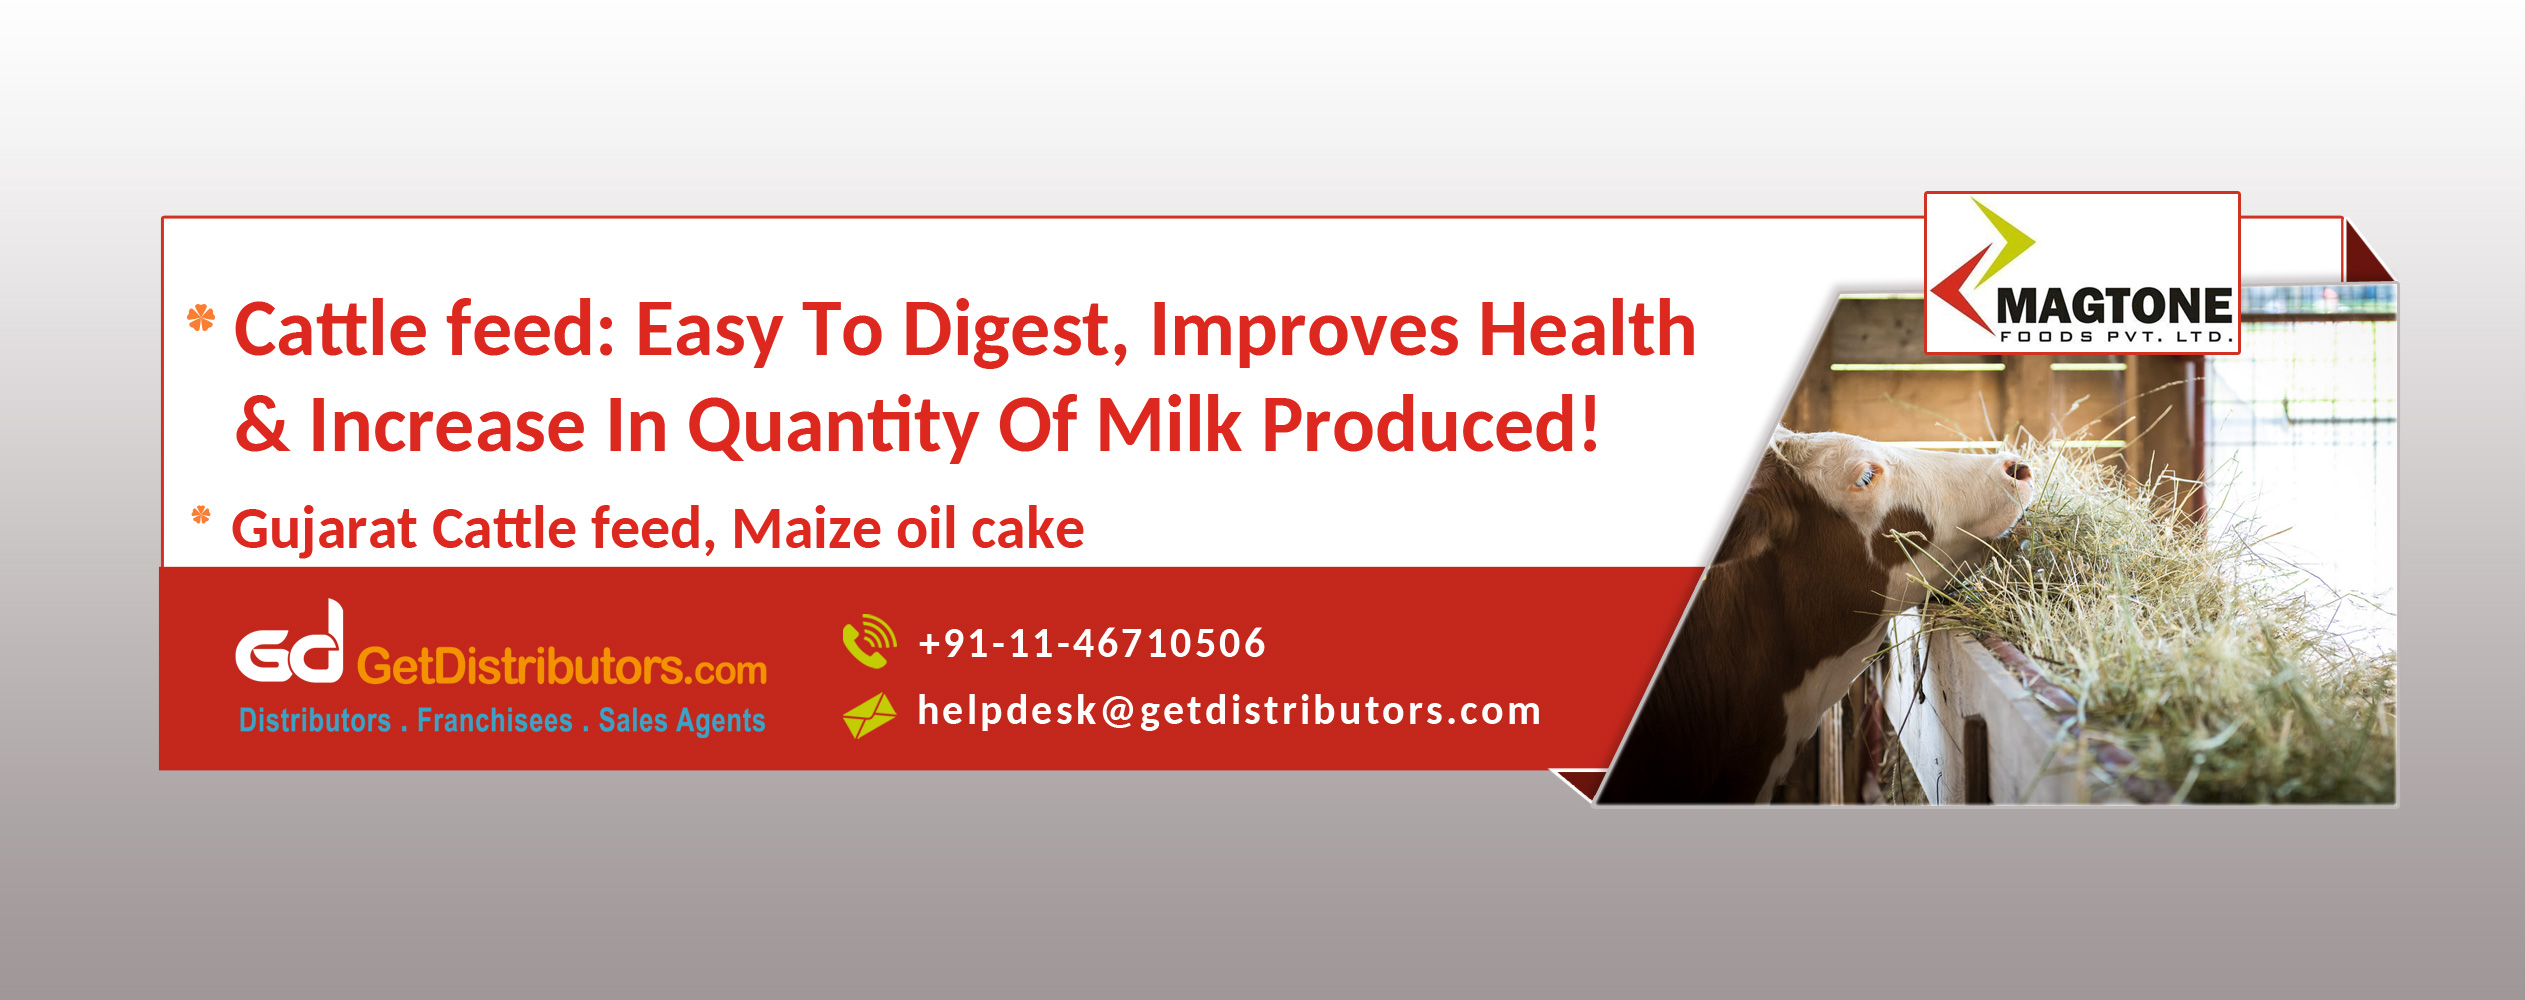 Gujarat Cattle Feed: Easy to Digest, Improves Health & Increase in Quantity of Milk Produced